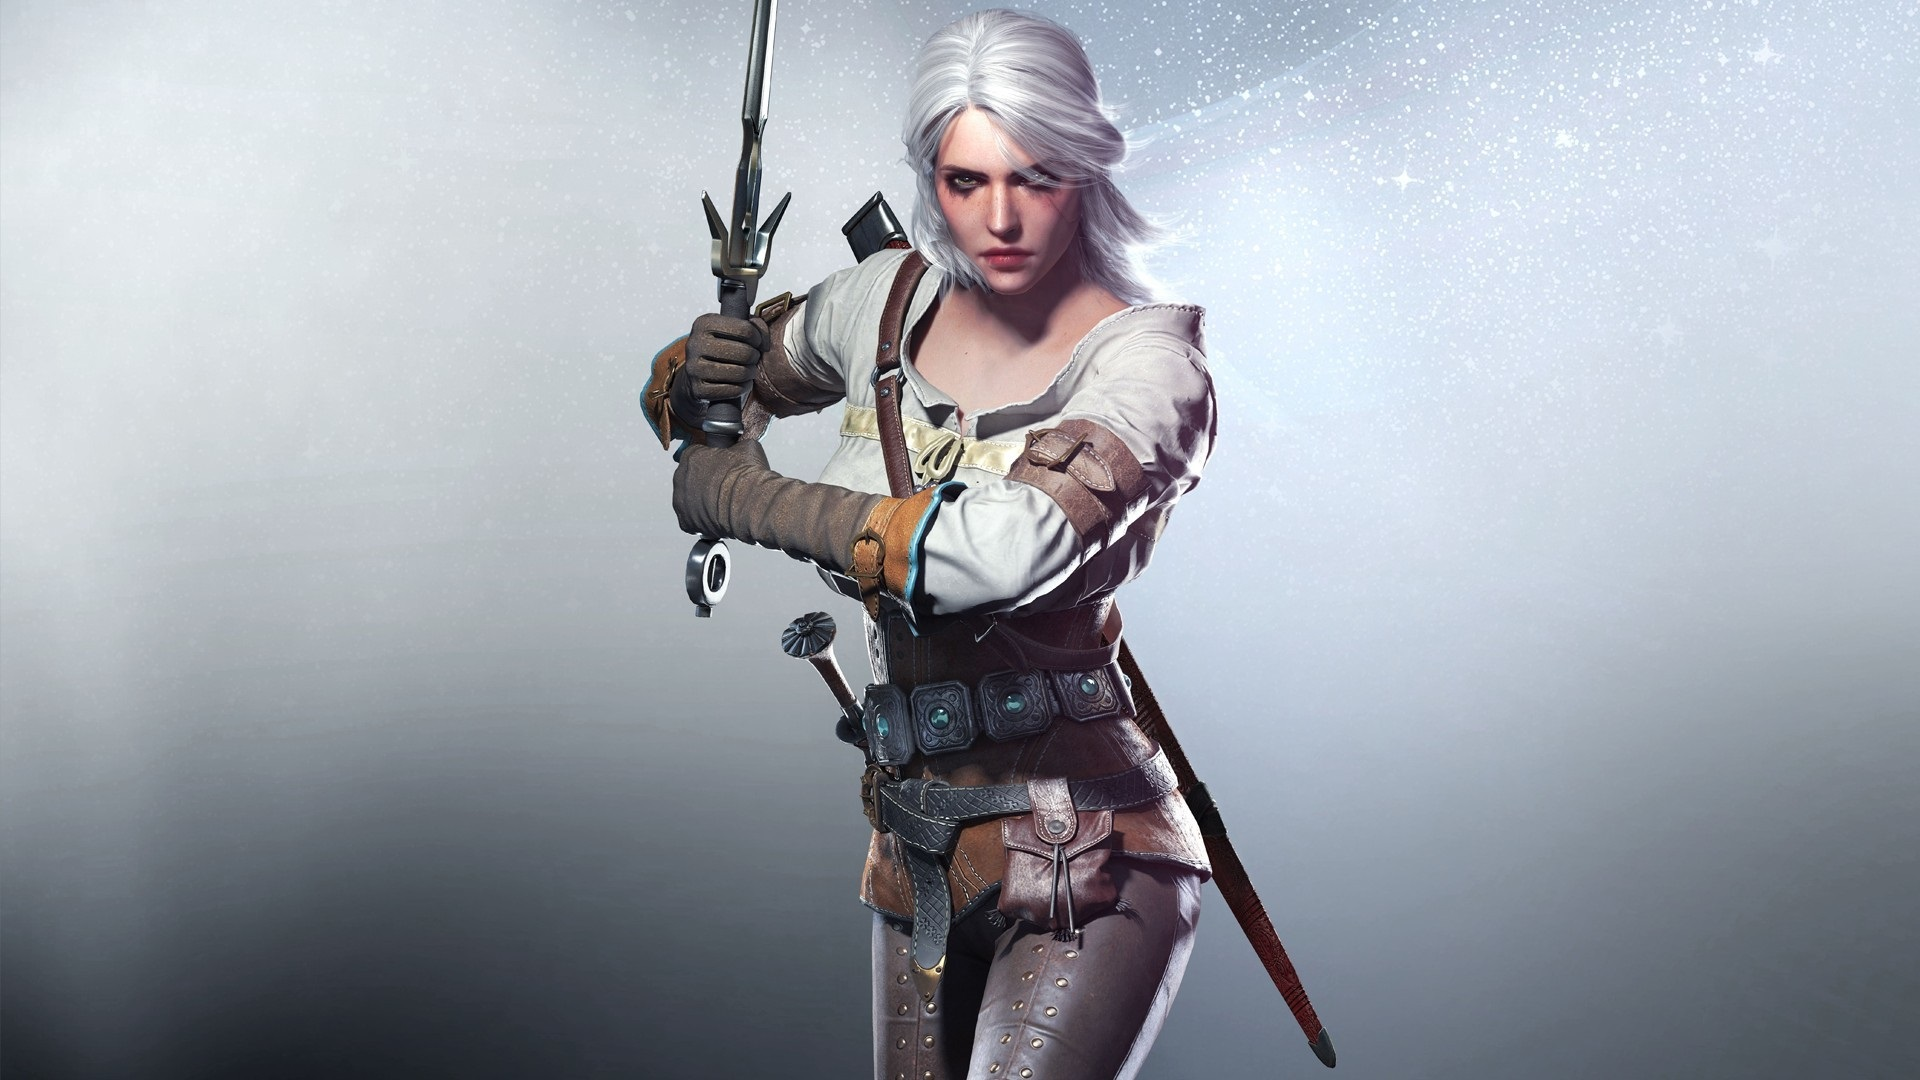 Fondos De Pantalla The Witcher 3 Wild Hunt Beautiful Girl